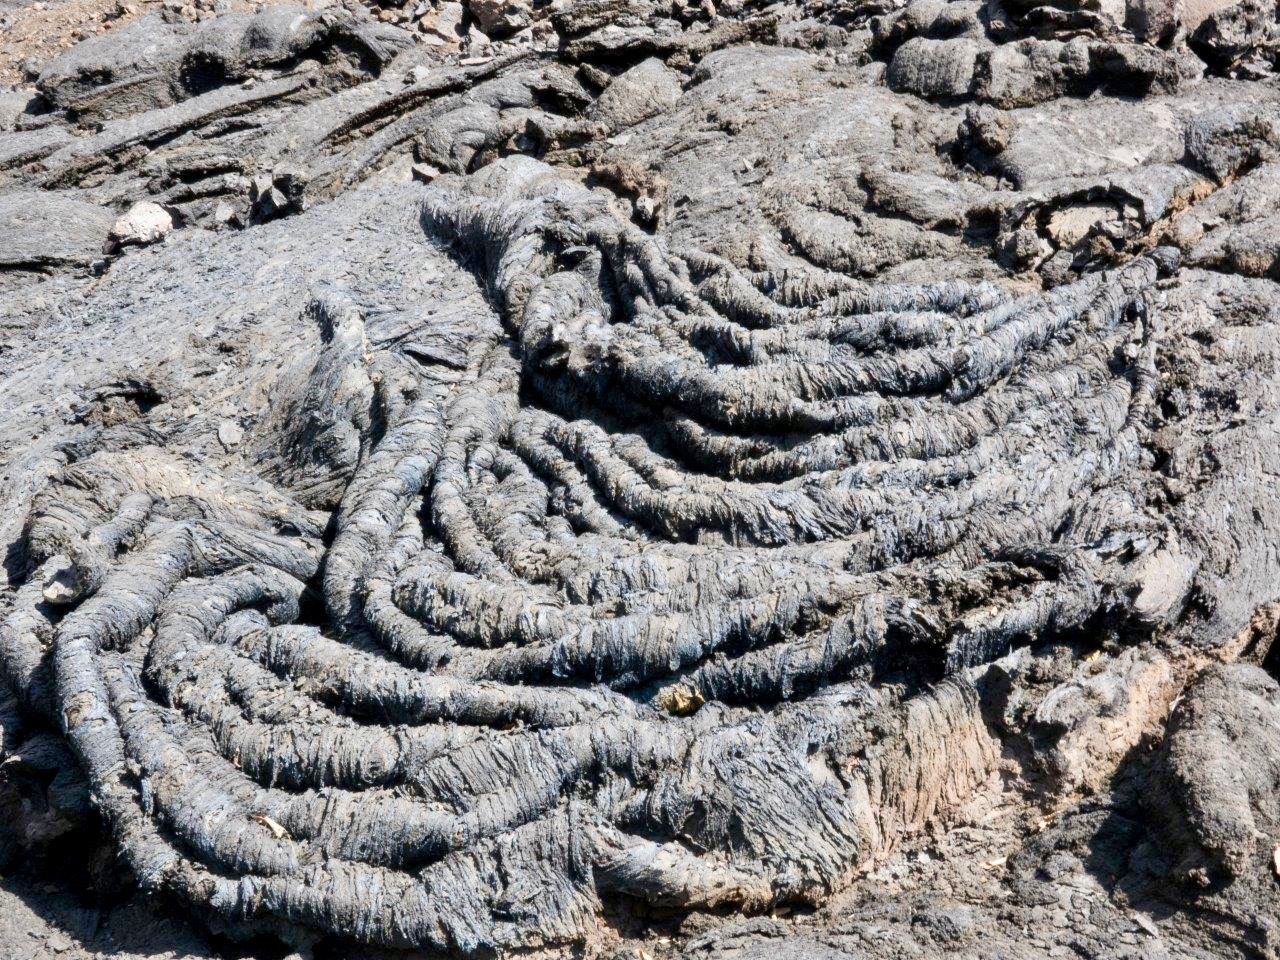 Pahoehoe Lava vom Ausbruch 2015